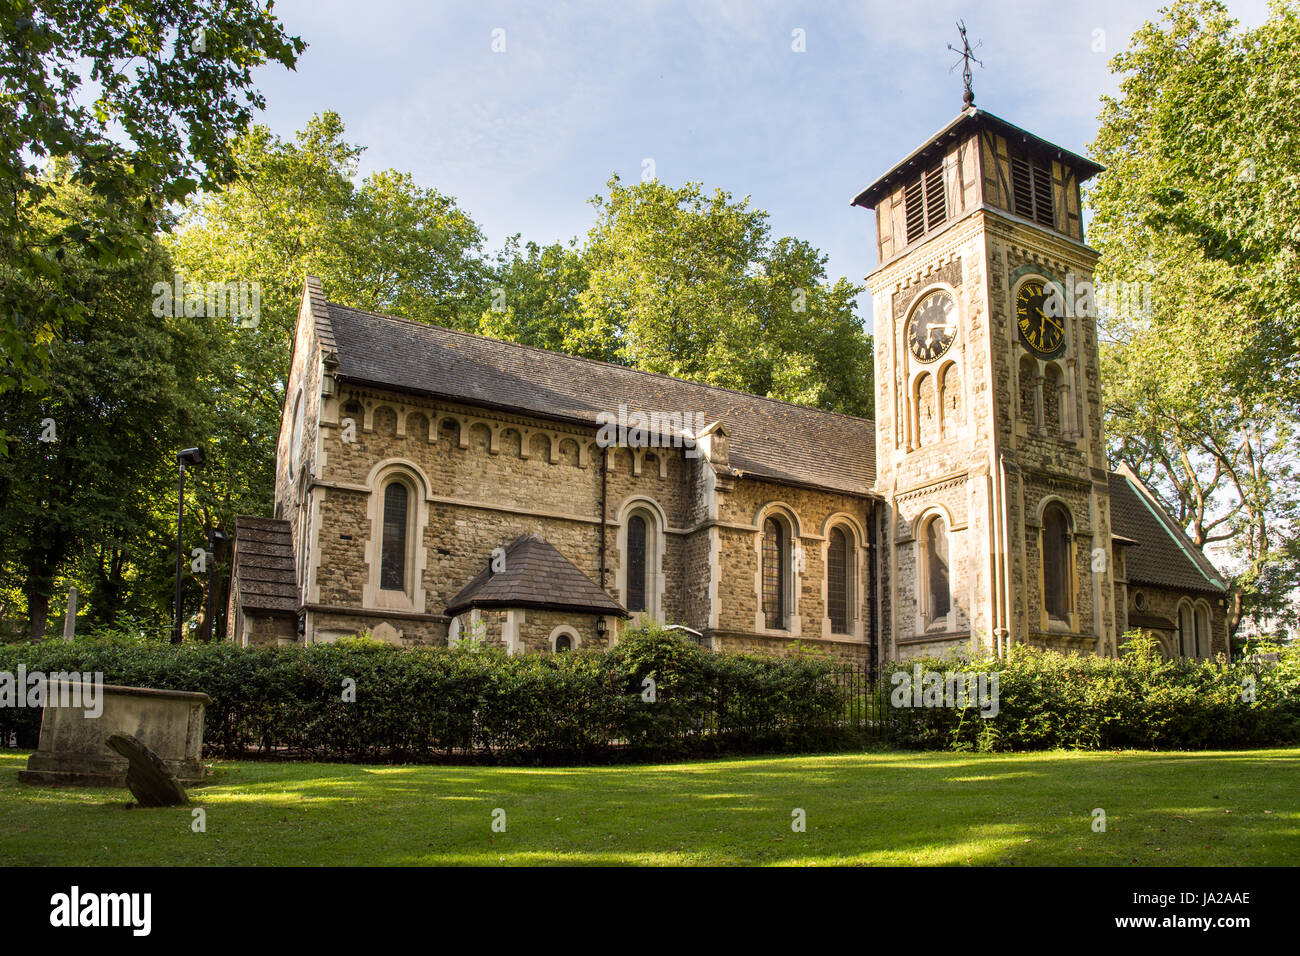 London, England - July 25, 2016: St Pancras Old Church in Camden, north London. - Stock Image